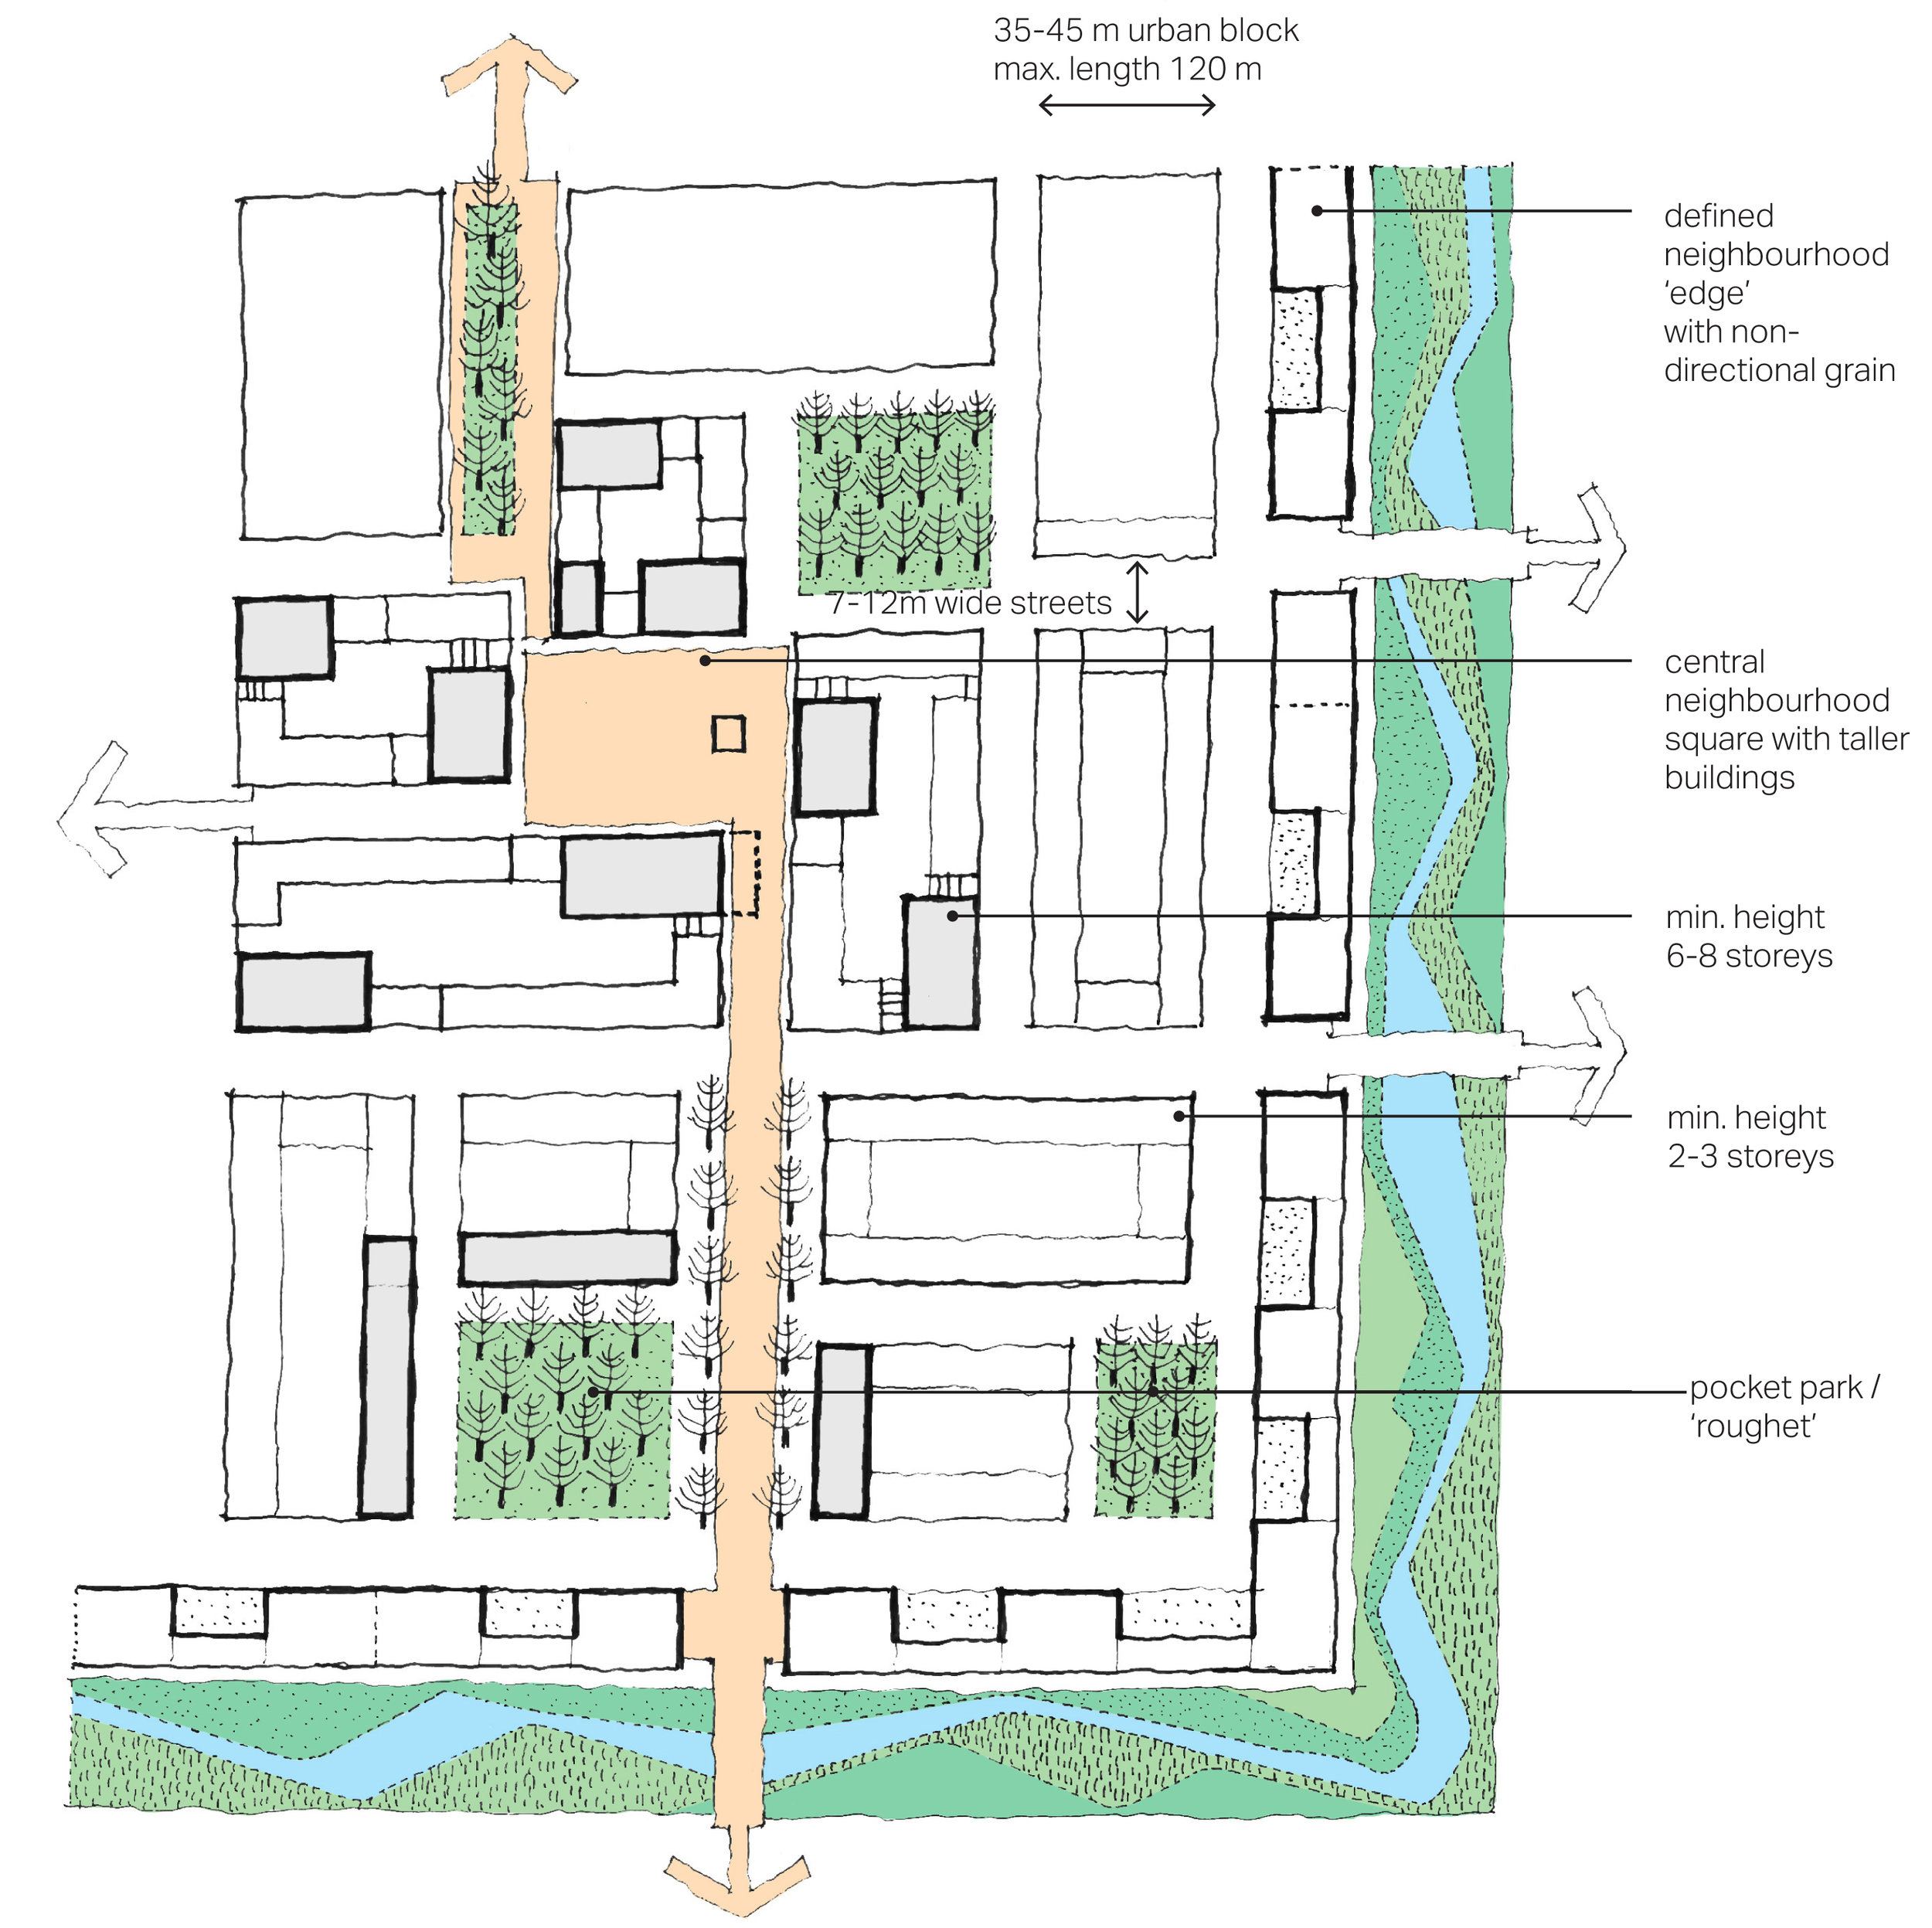 The diagram above illustrates an example of how the principles could be applied to create a characterful urban structure derived from the analysis of defined settlements.